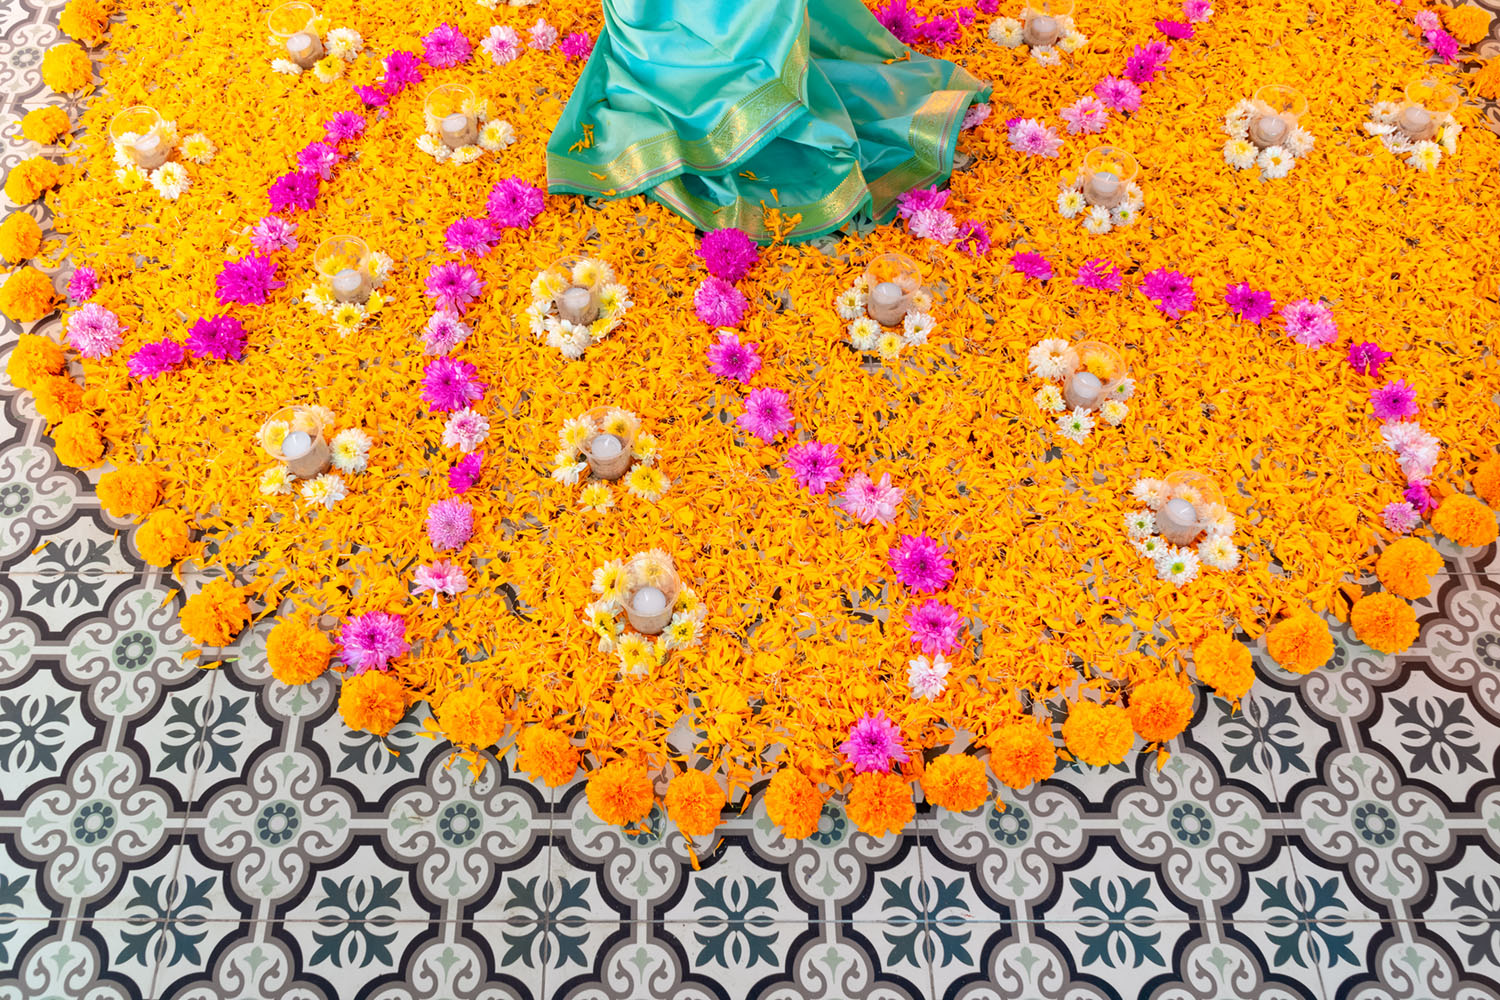 a vibrant circular, symmetrical design of orange marigold blooms and petals, accented with pink flowers, on an ornate tile floor